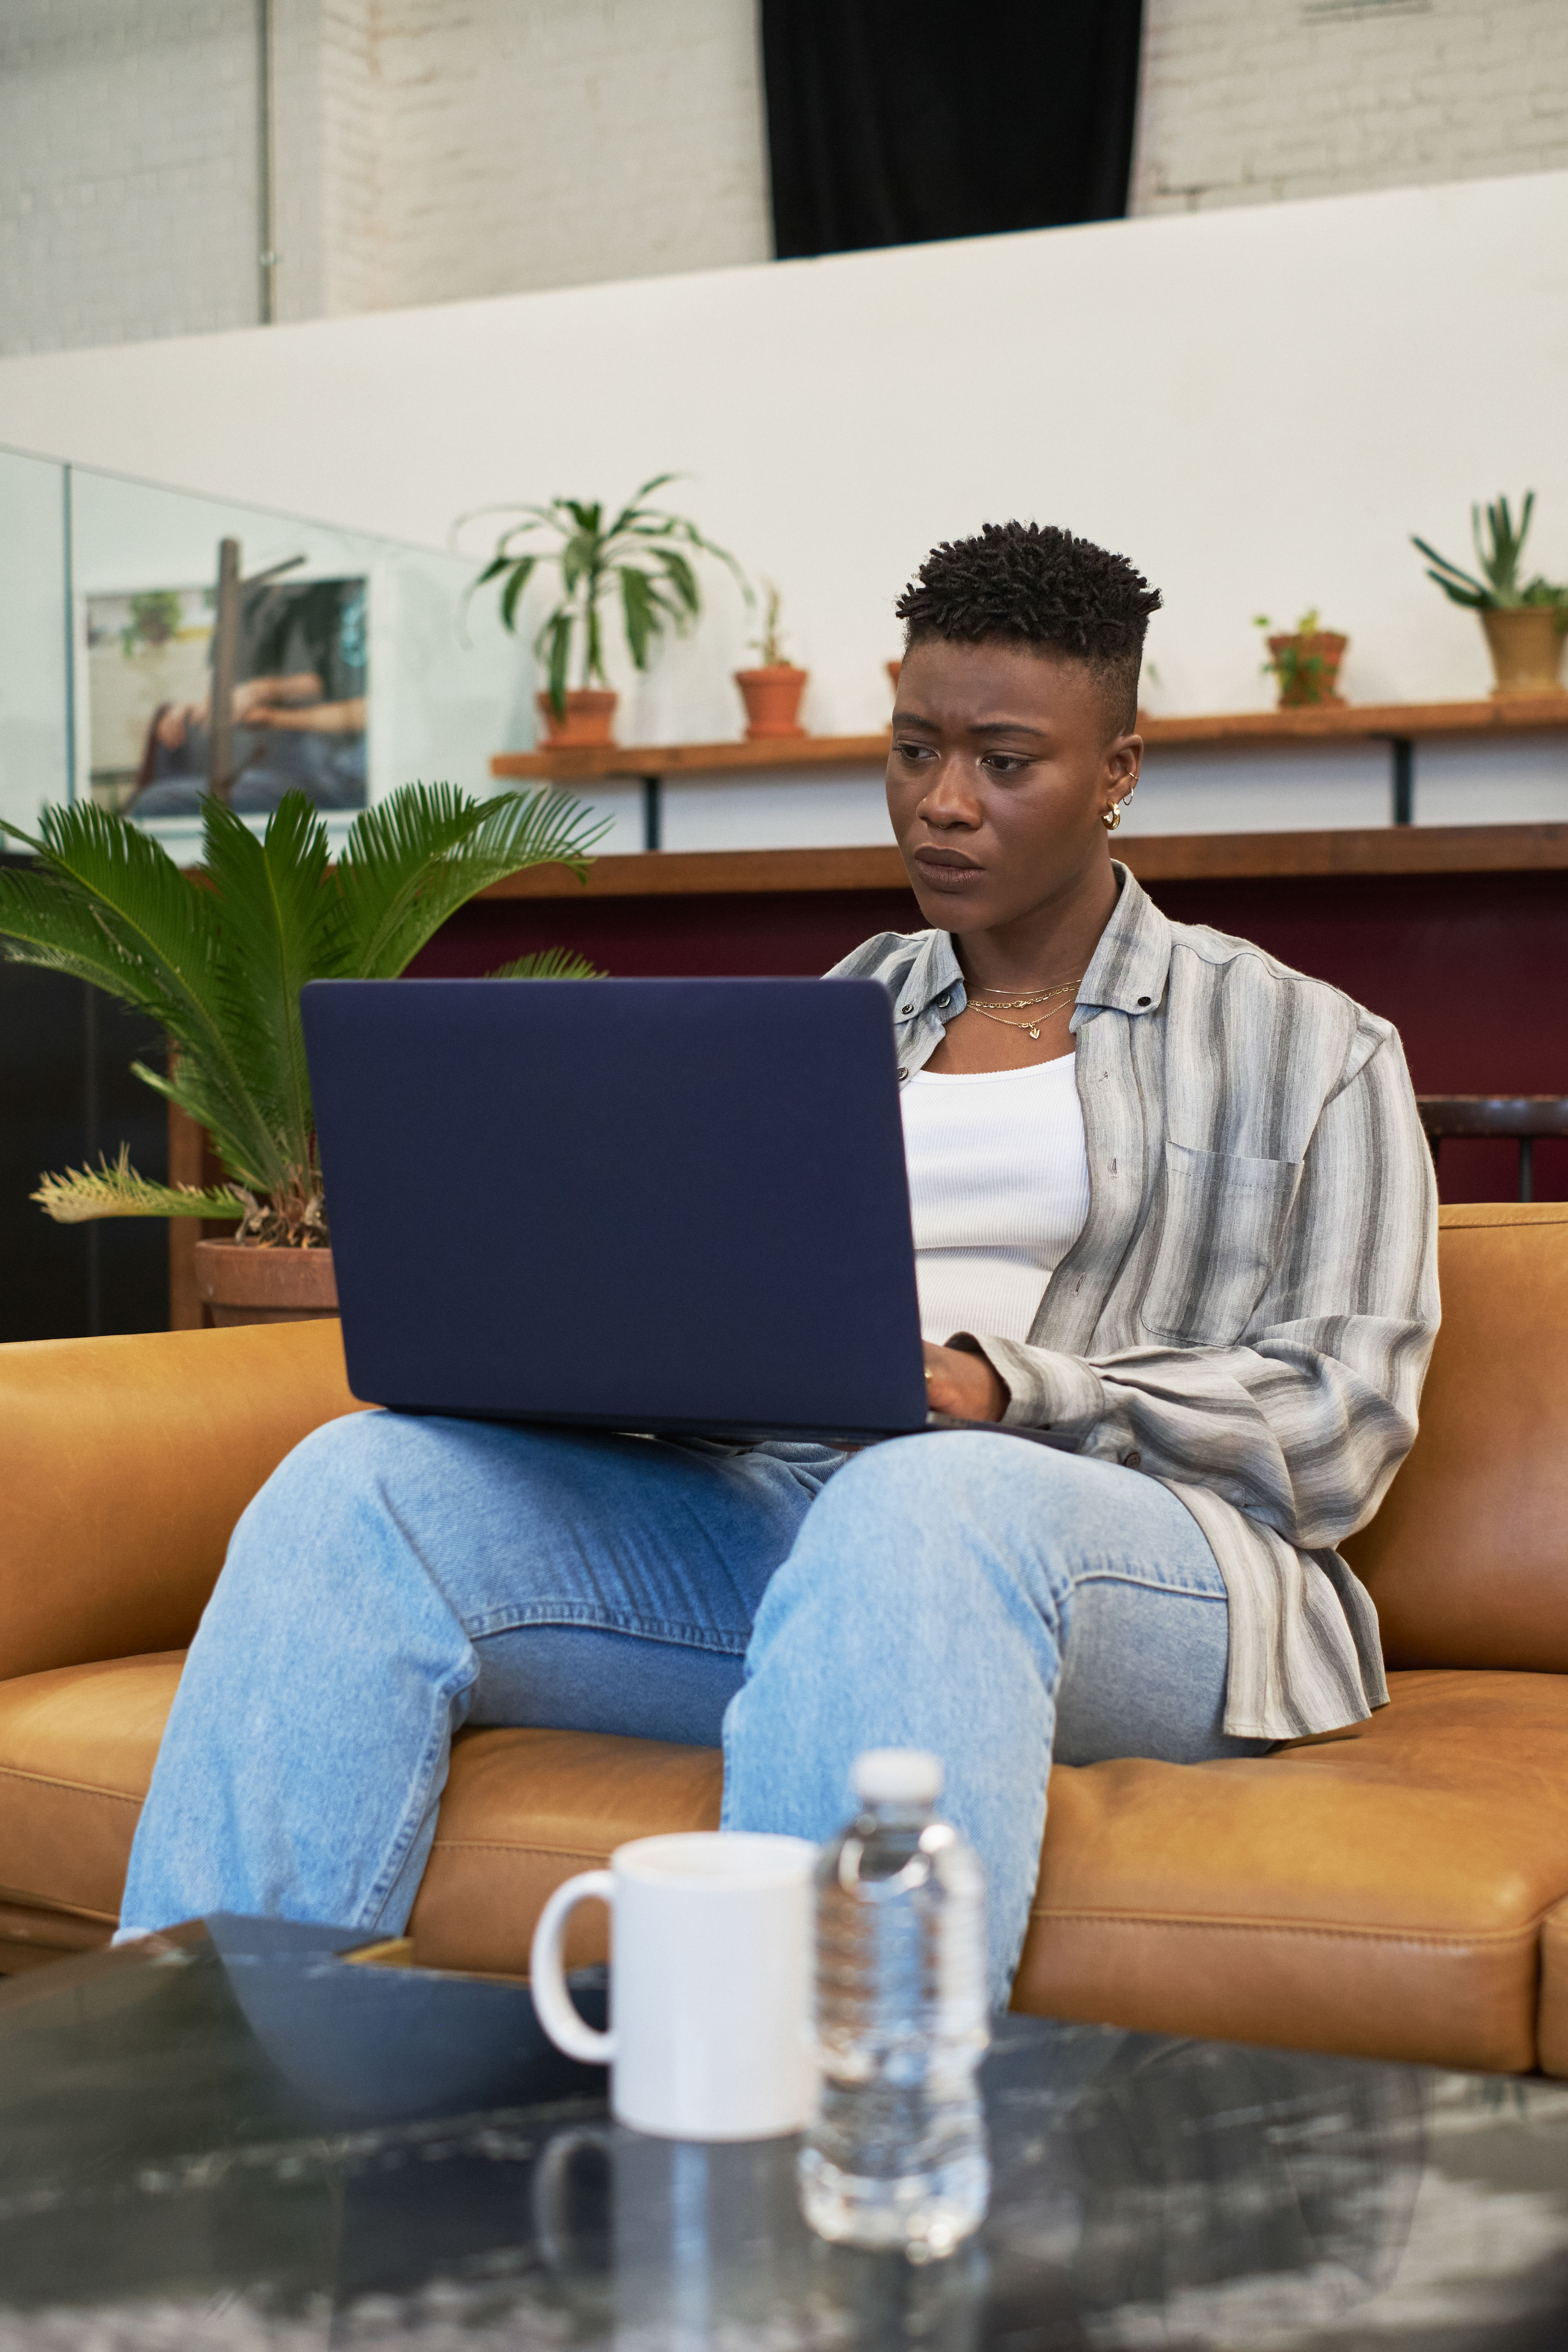 A non-binary person using a laptop at work(2)